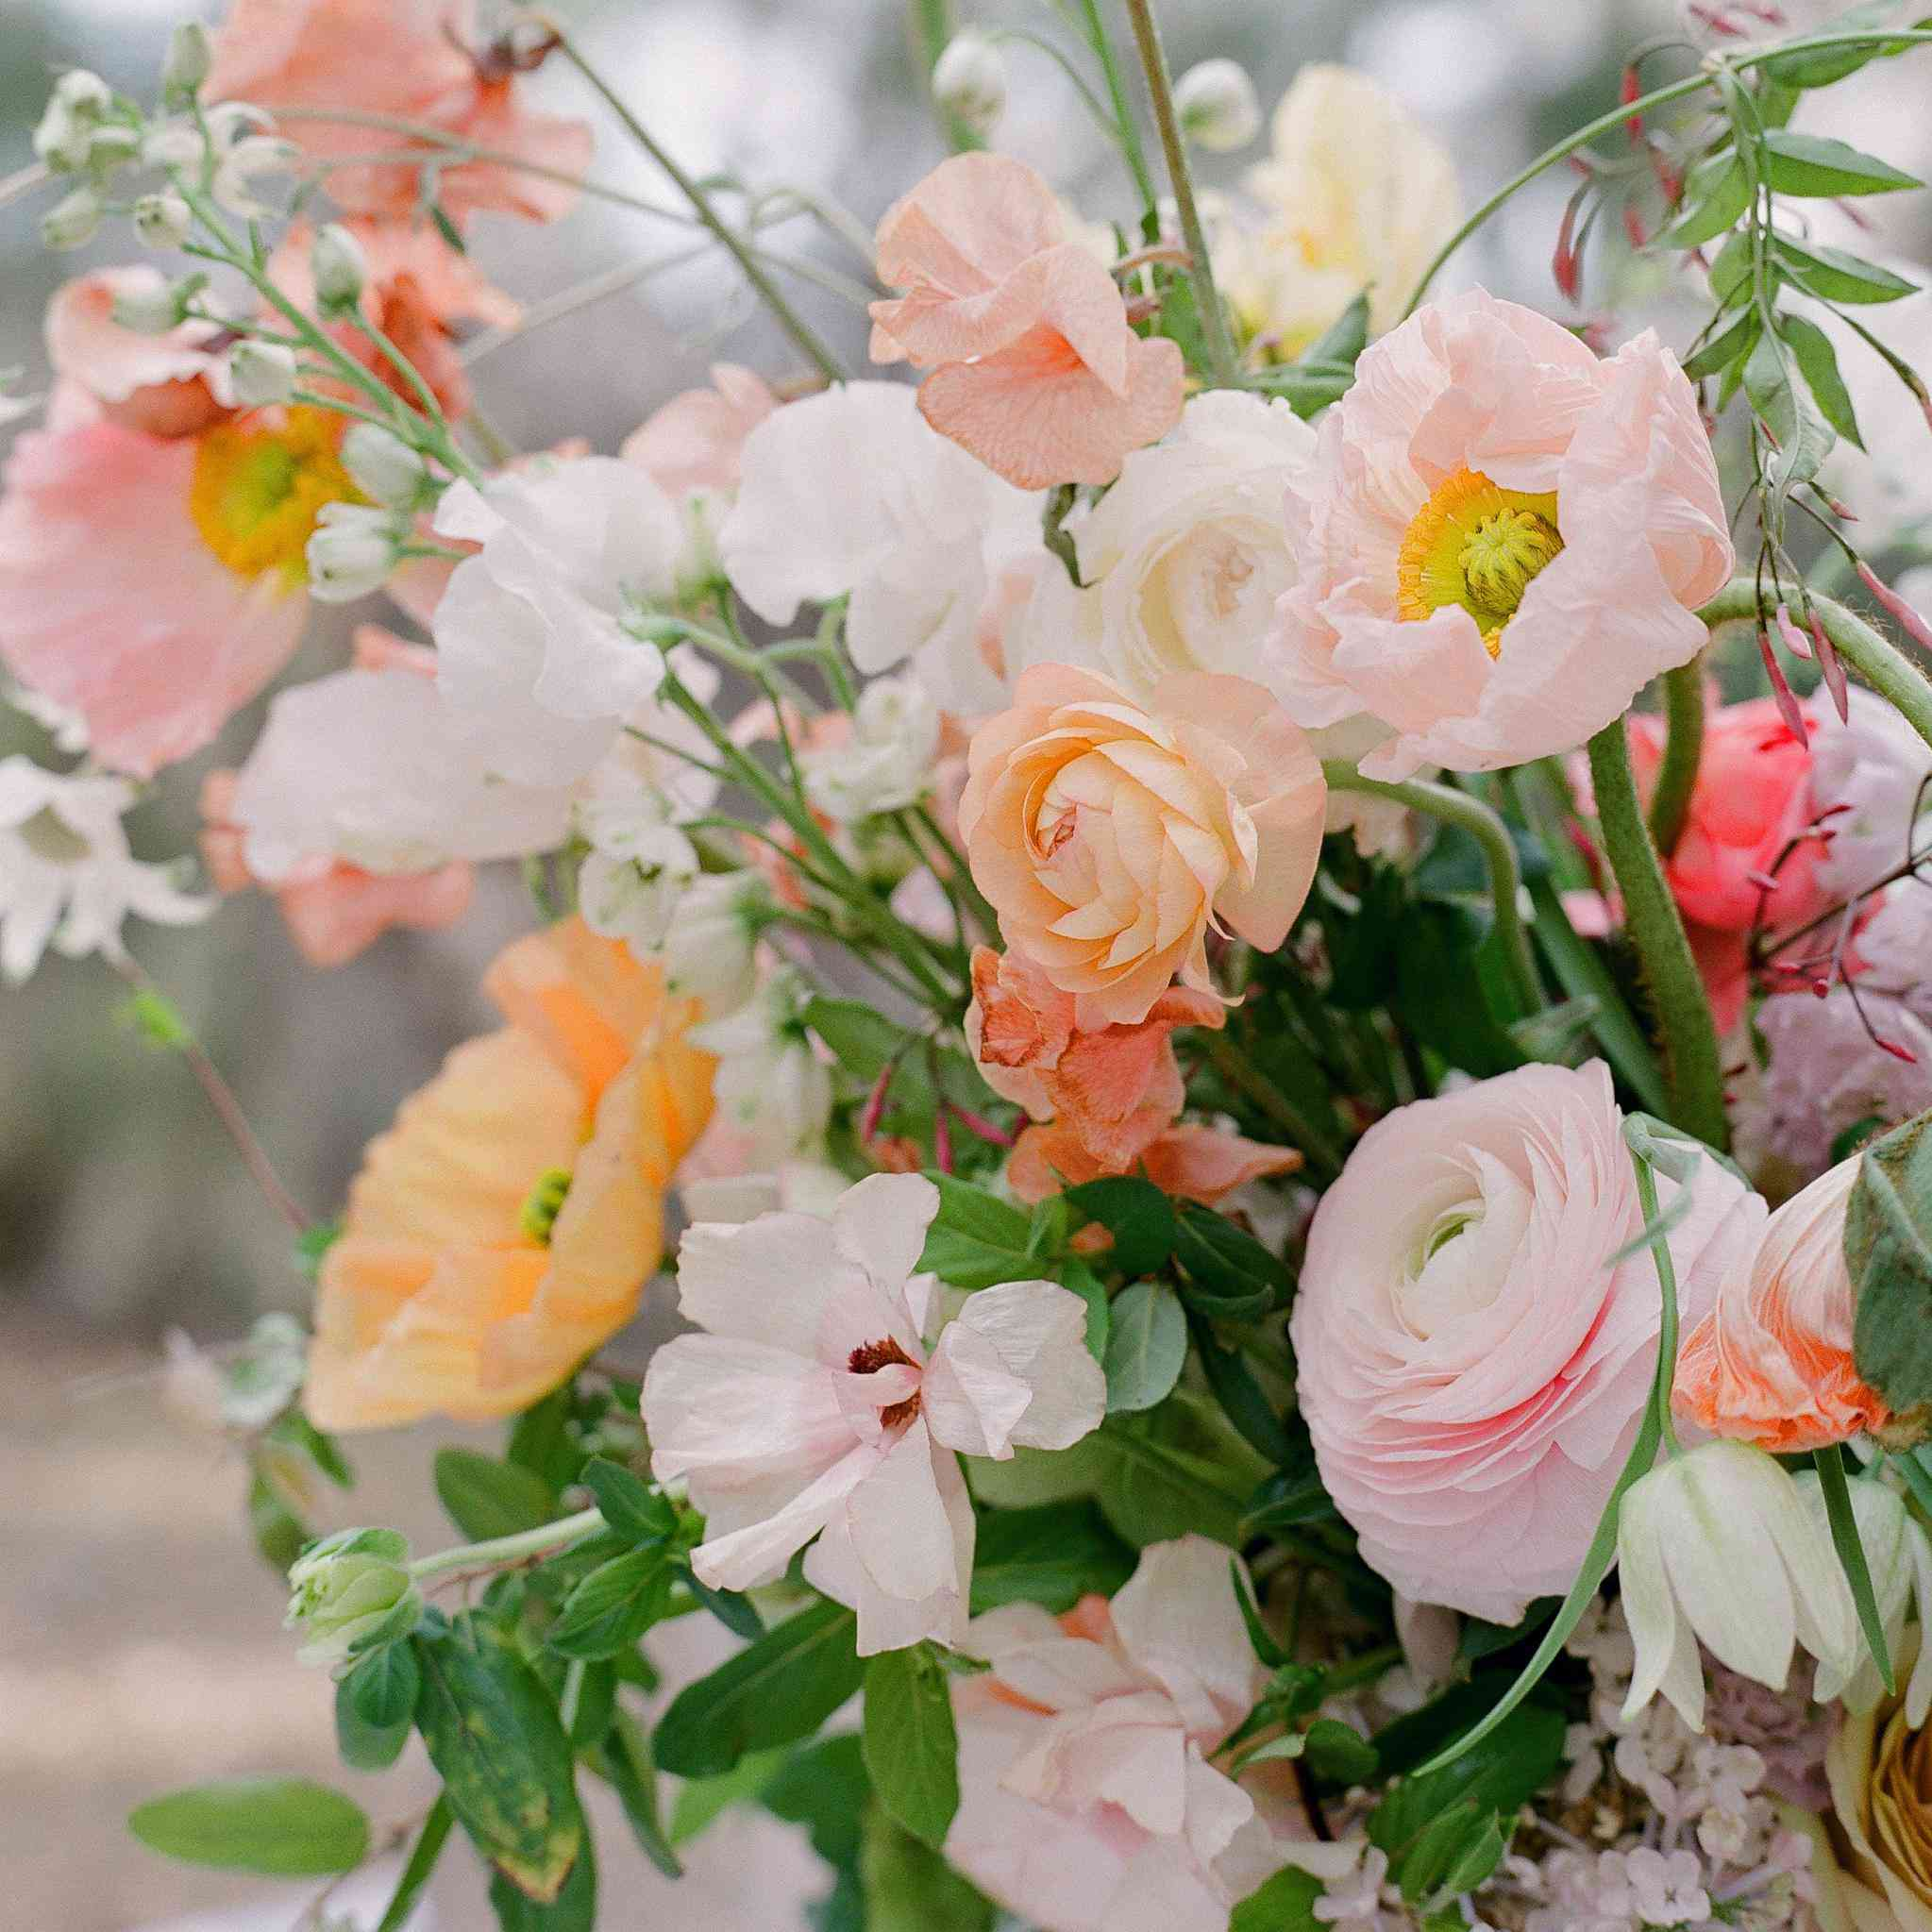 Love Flowers But Sensitive to Strong Scents? Here Are Some Alternatives